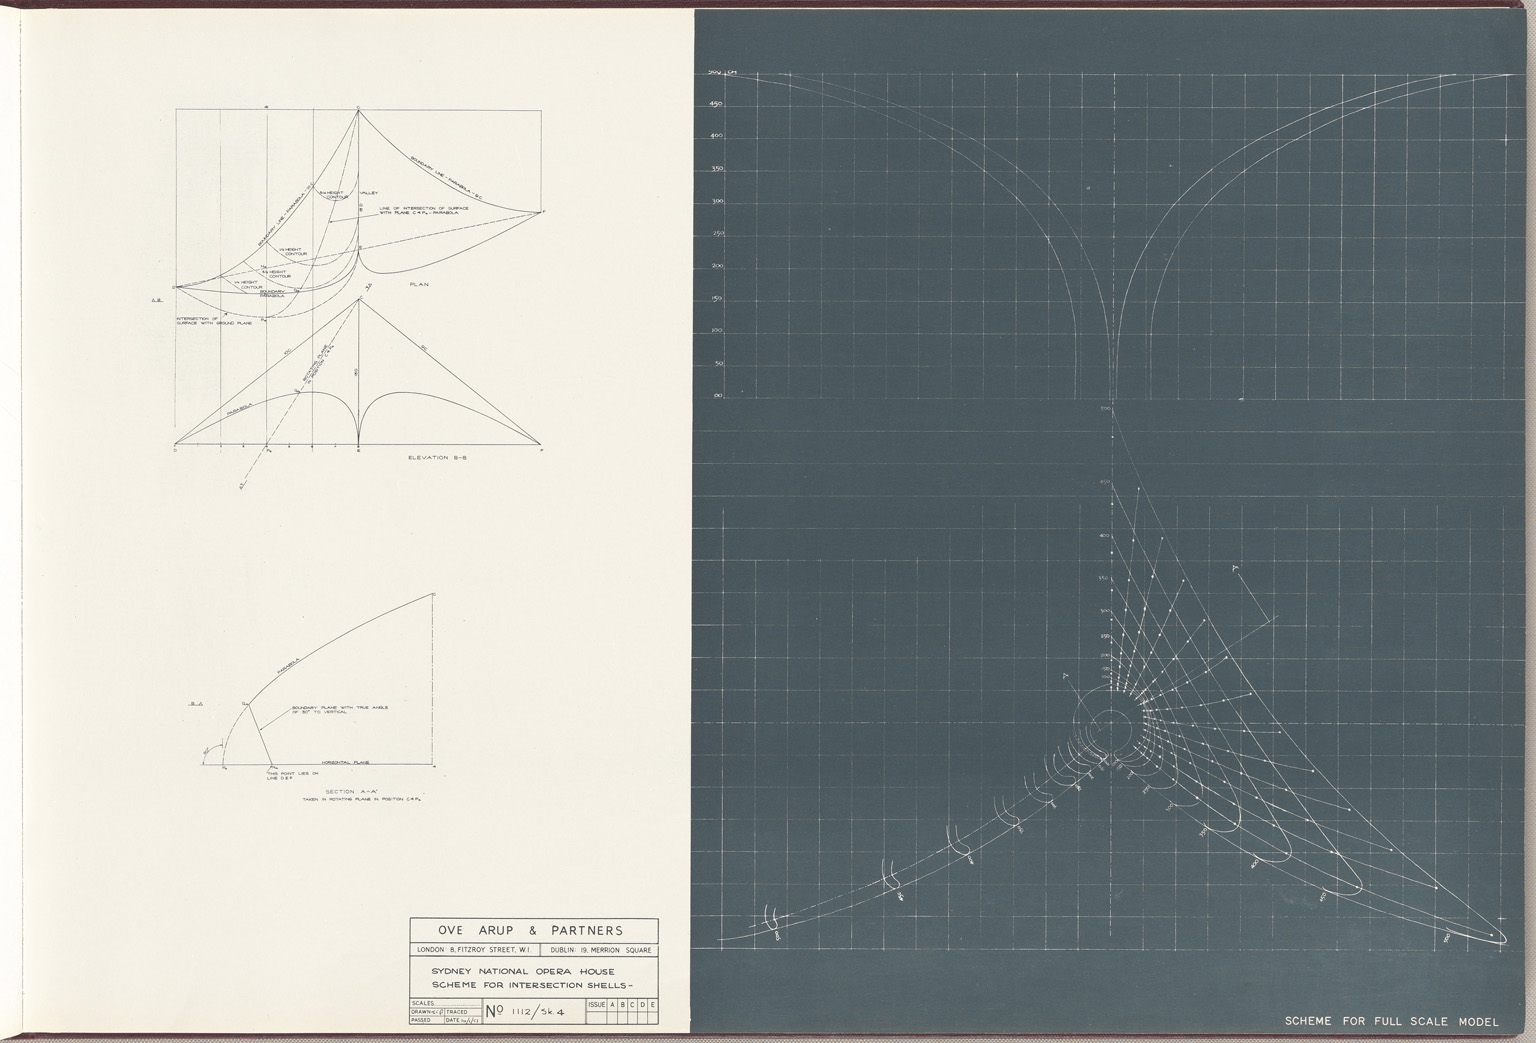 Scheme for full scale model Sydney Opera House Red Book